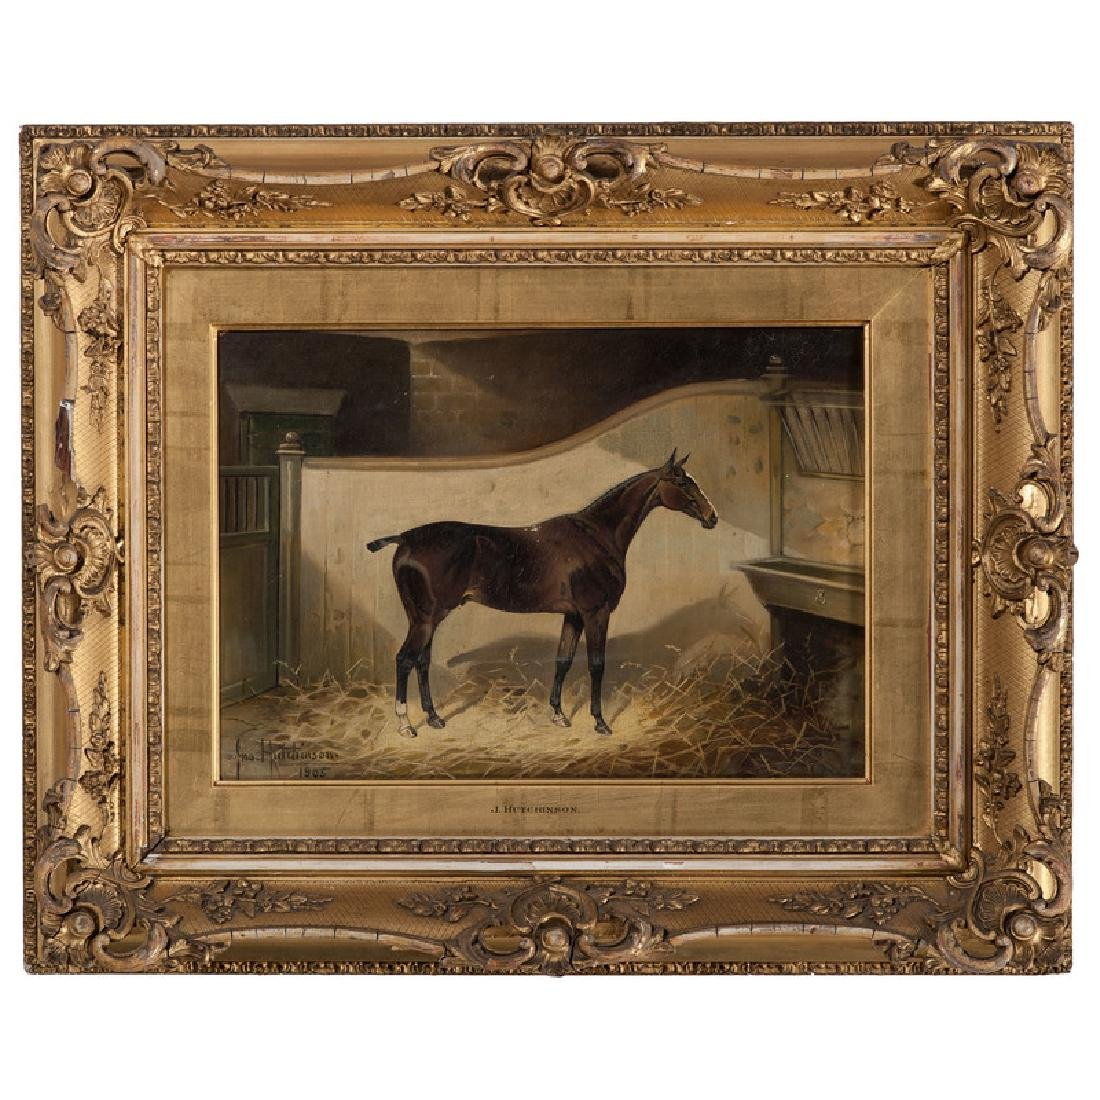 English Equestrian Painting Signed J. Hutchinson